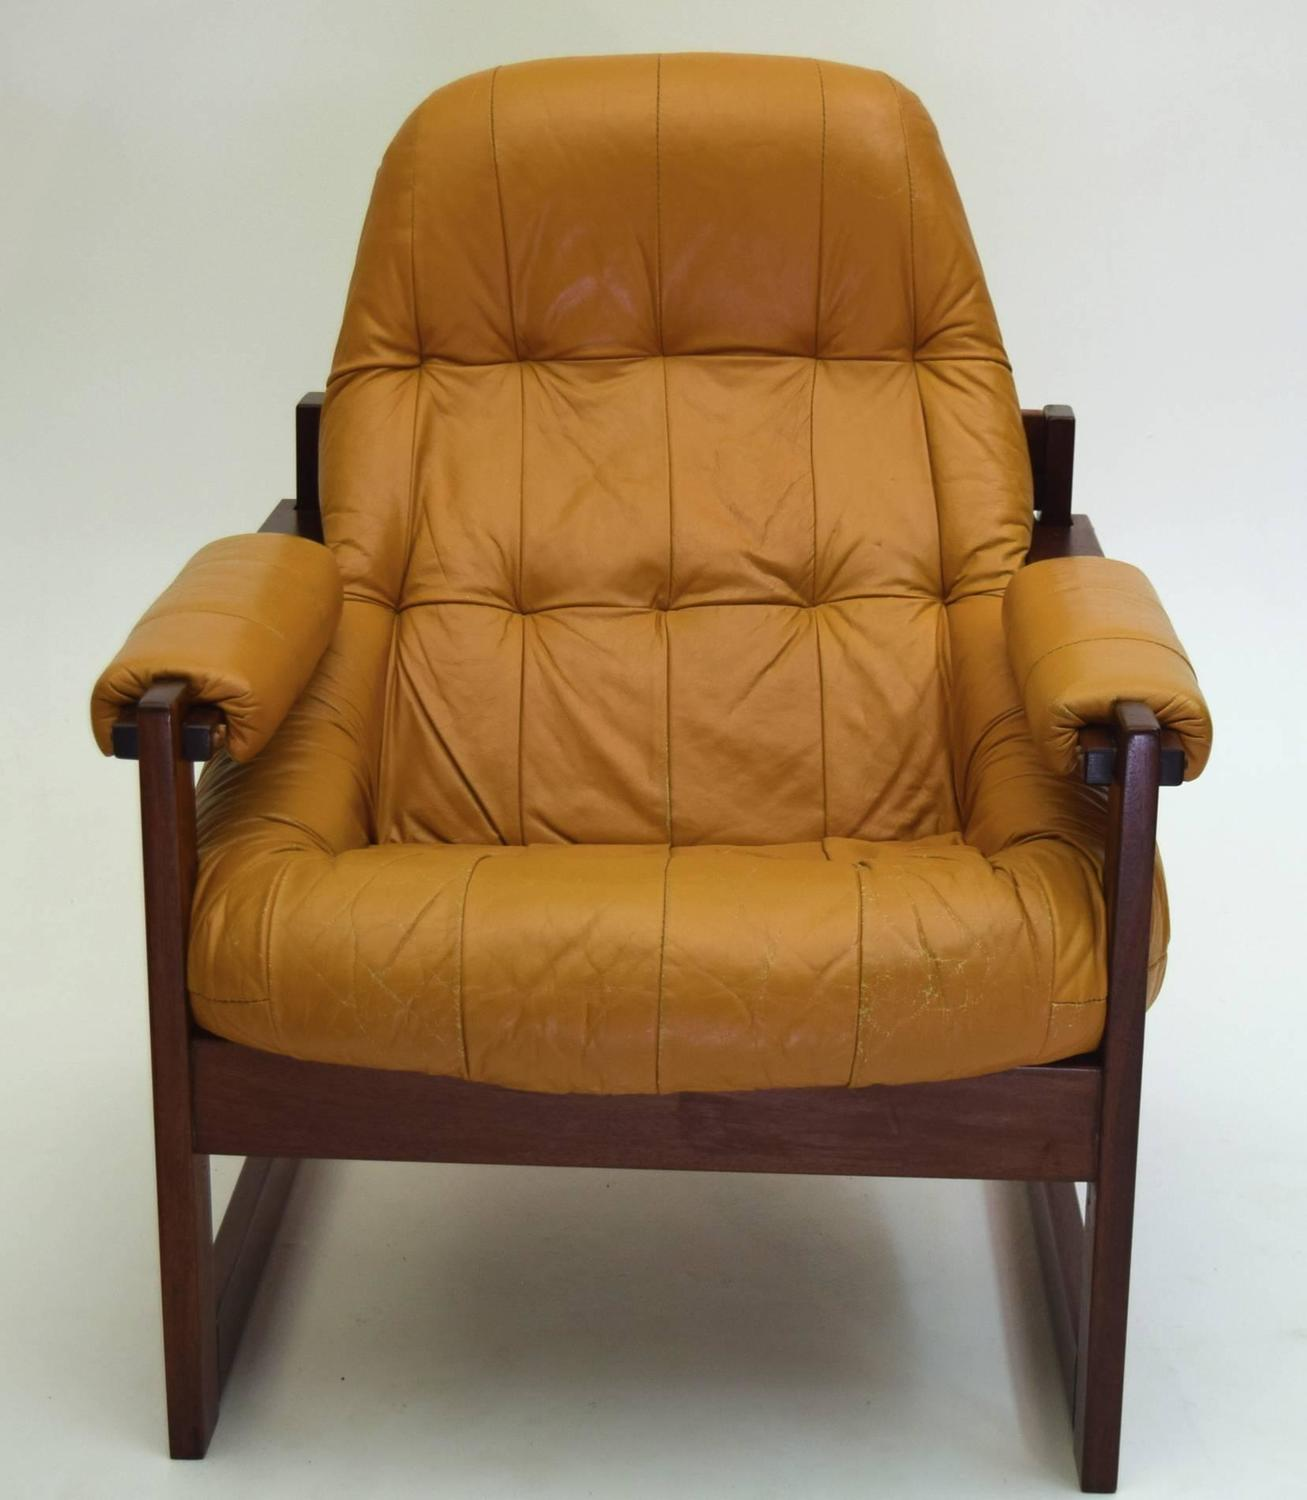 oversized leather chair and ottoman two person swing large lounge by percival lafer